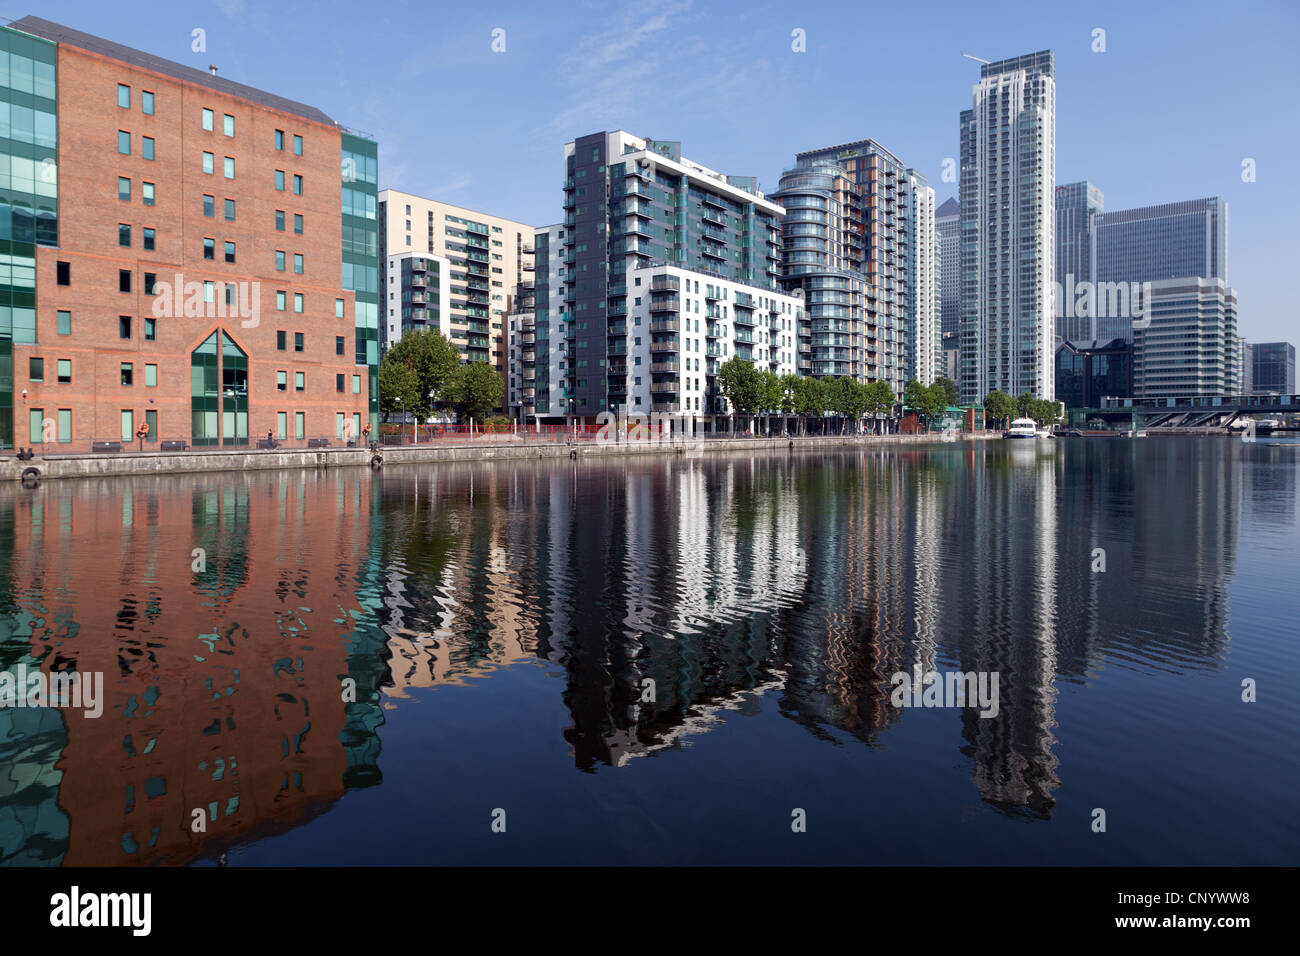 Building reflected in water of old docks, Docklands, London - Stock Image